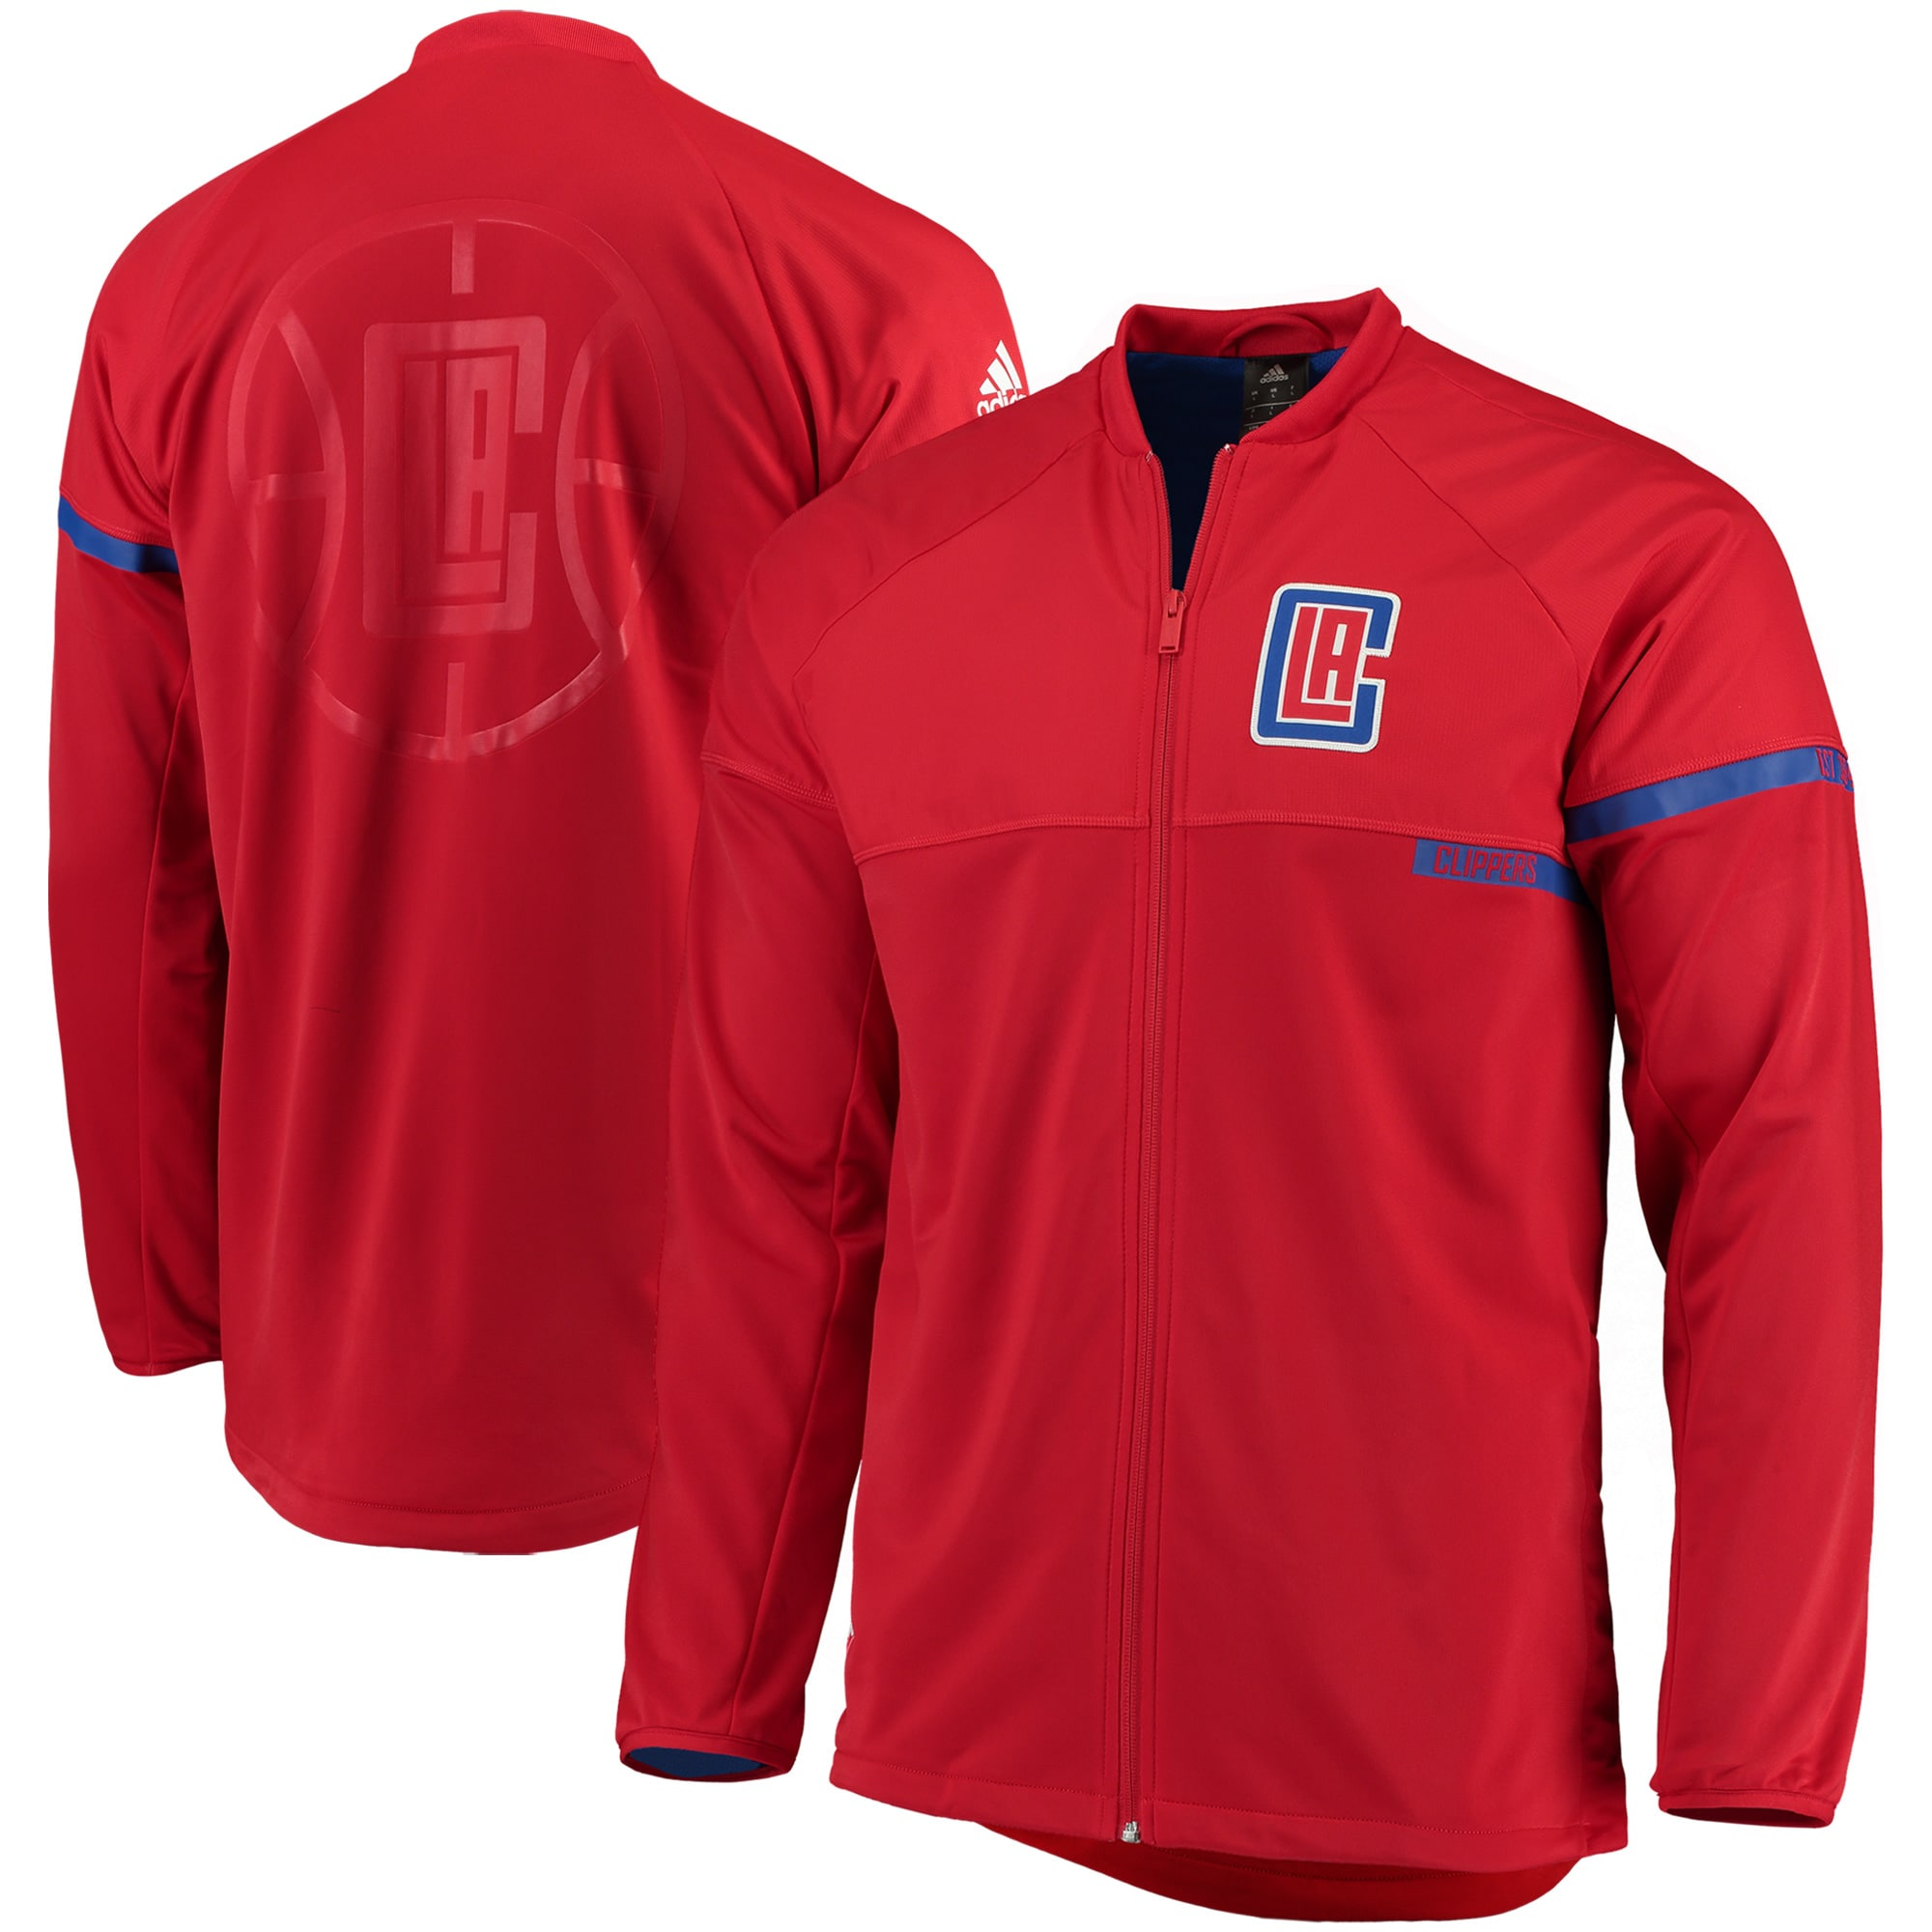 LA Clippers adidas 2016 On-Court Full-Zip Jacket - Red